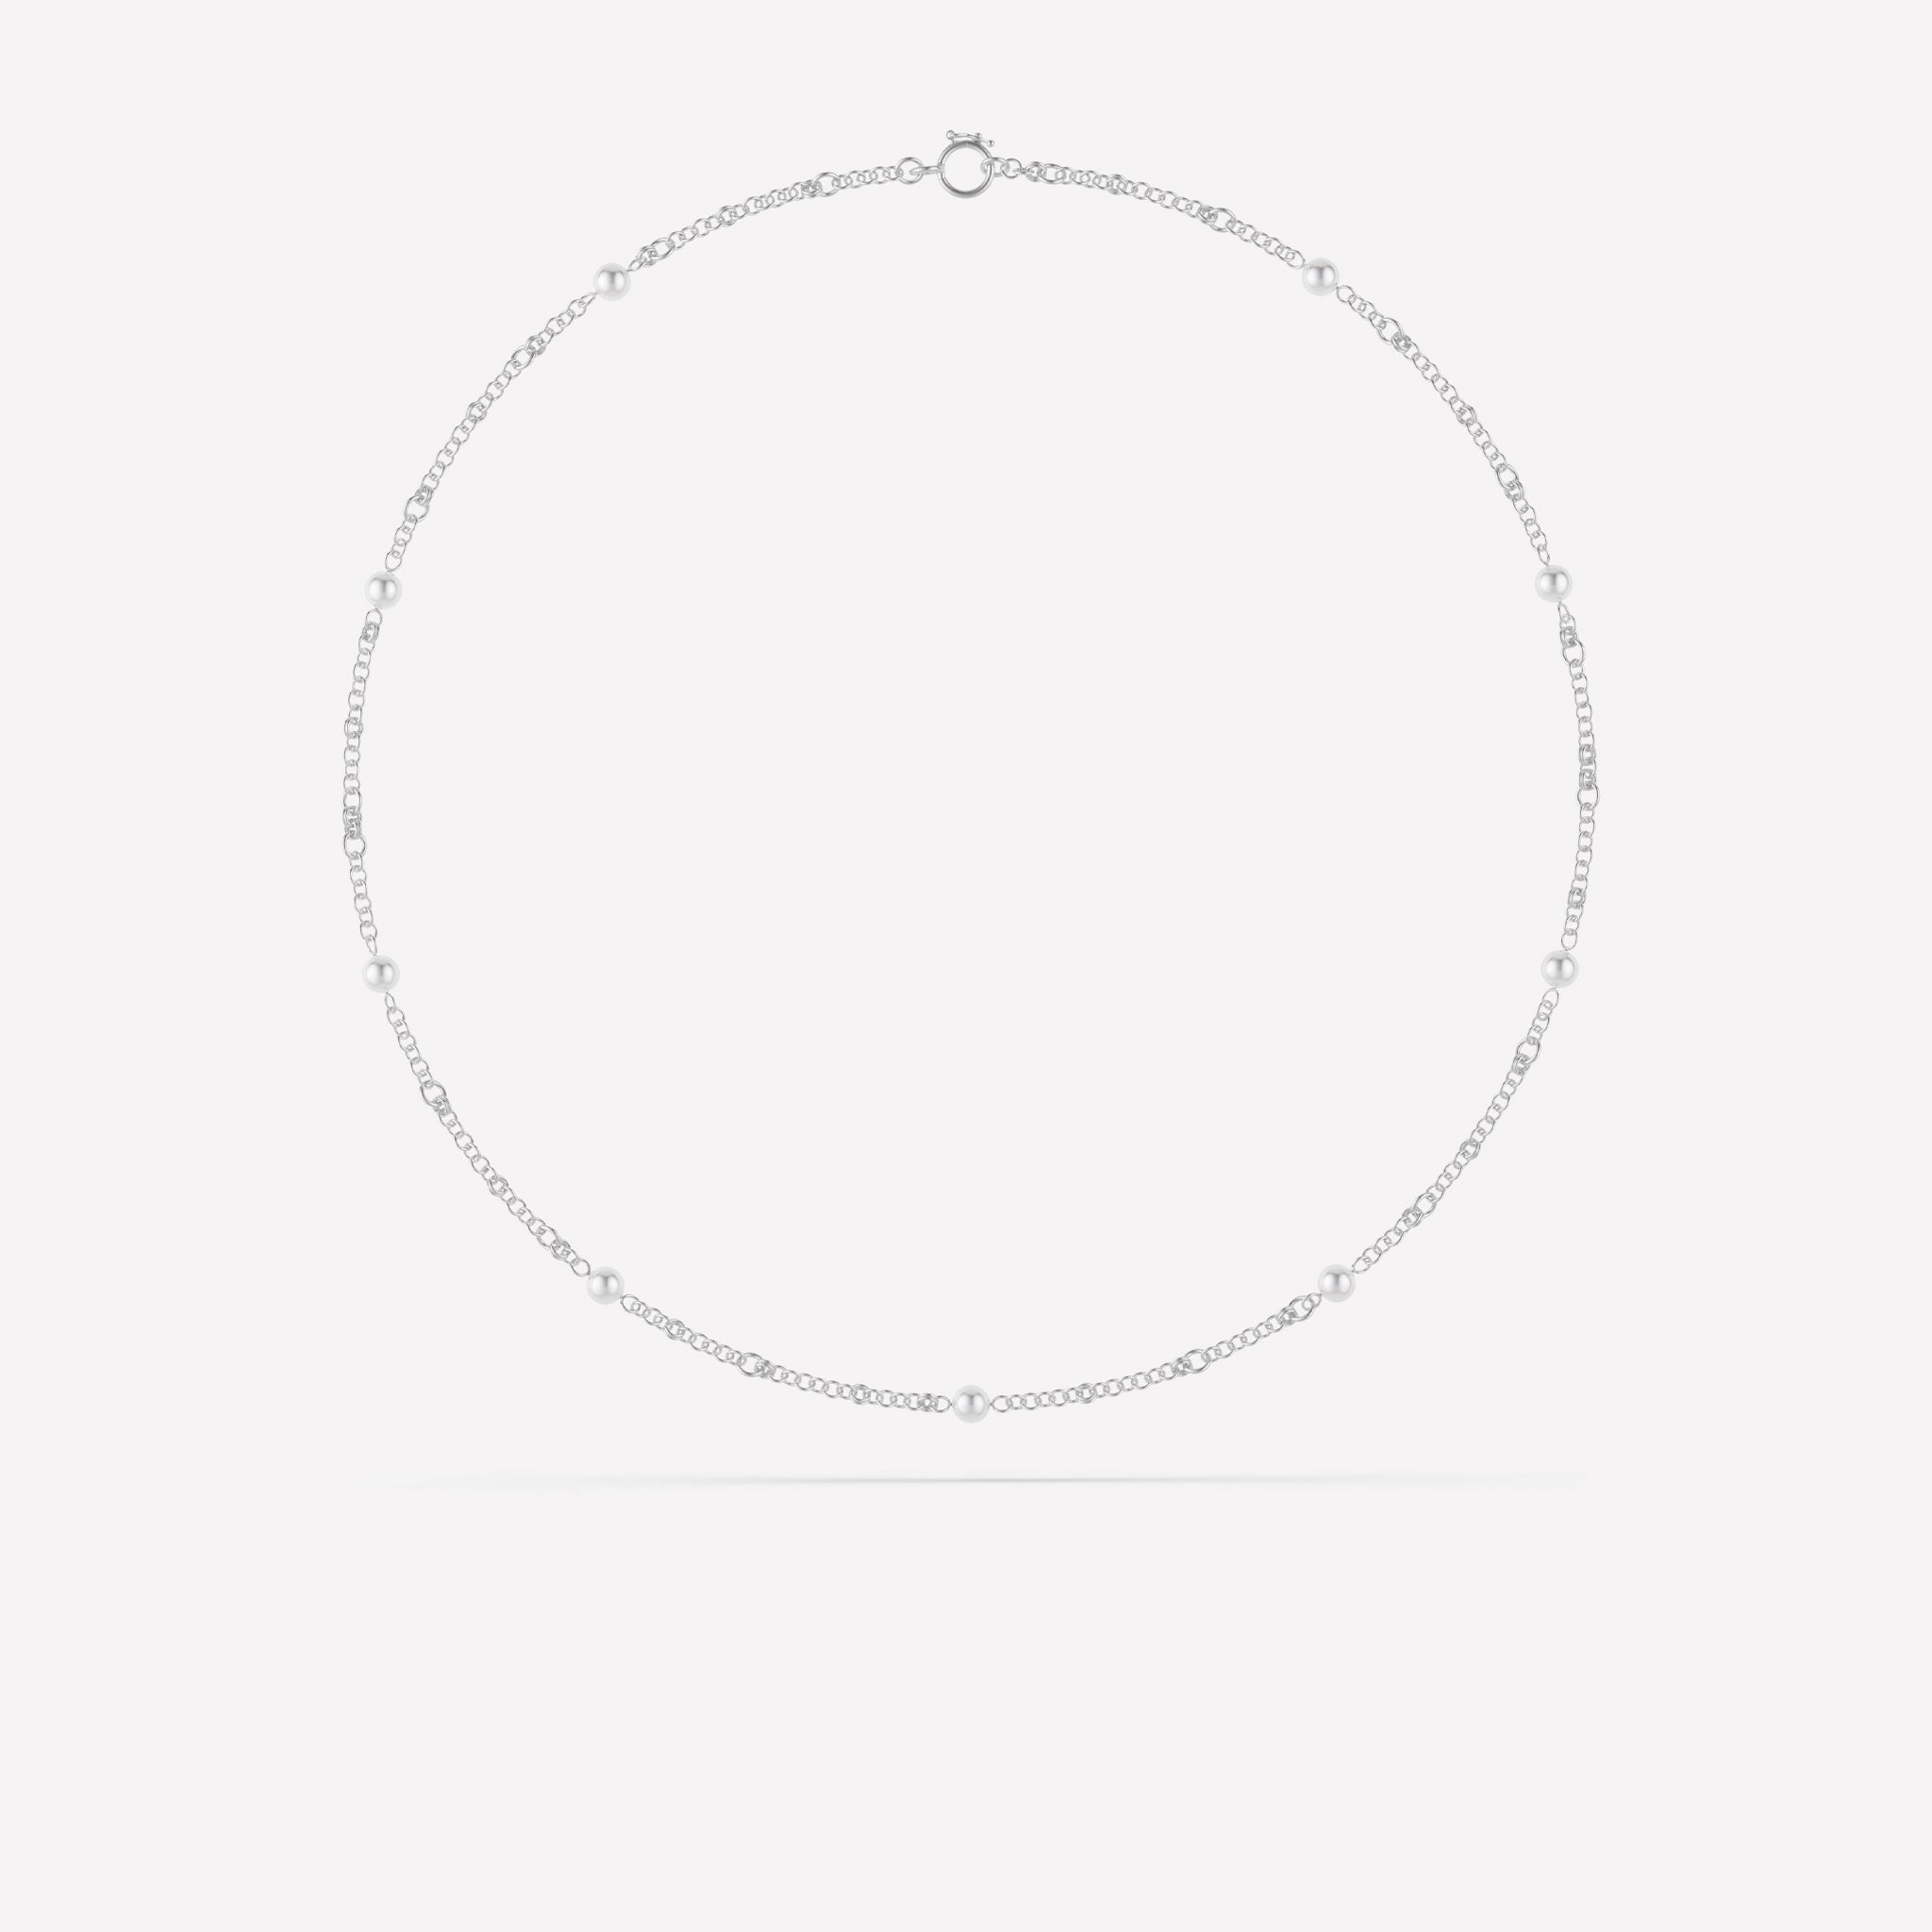 Akoya Gravity Chain Necklace - Akoya Silver Gravity Chain Necklace